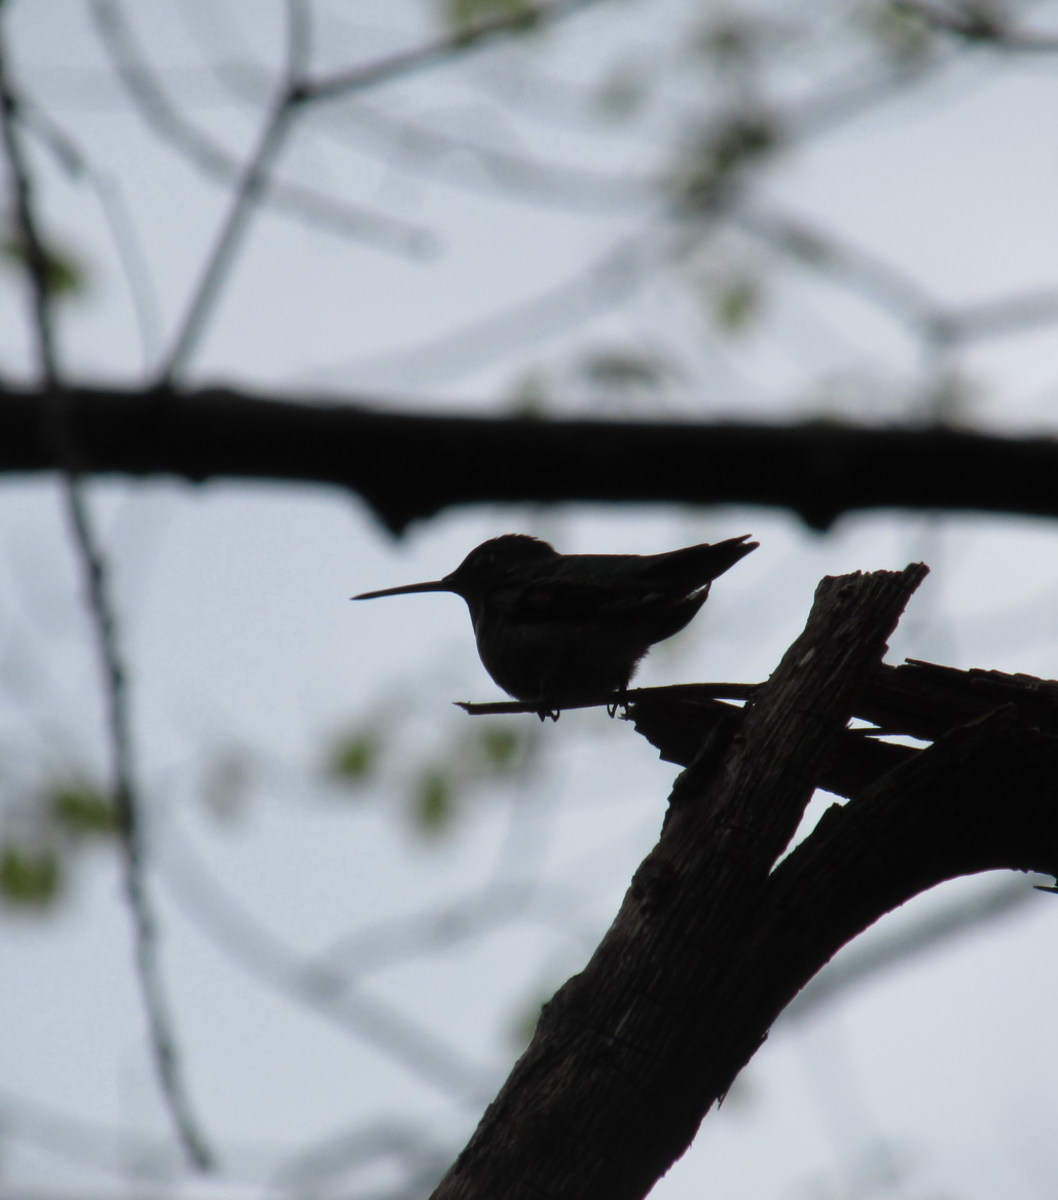 Hummingbird perched on a tiny branch in the early morning light.